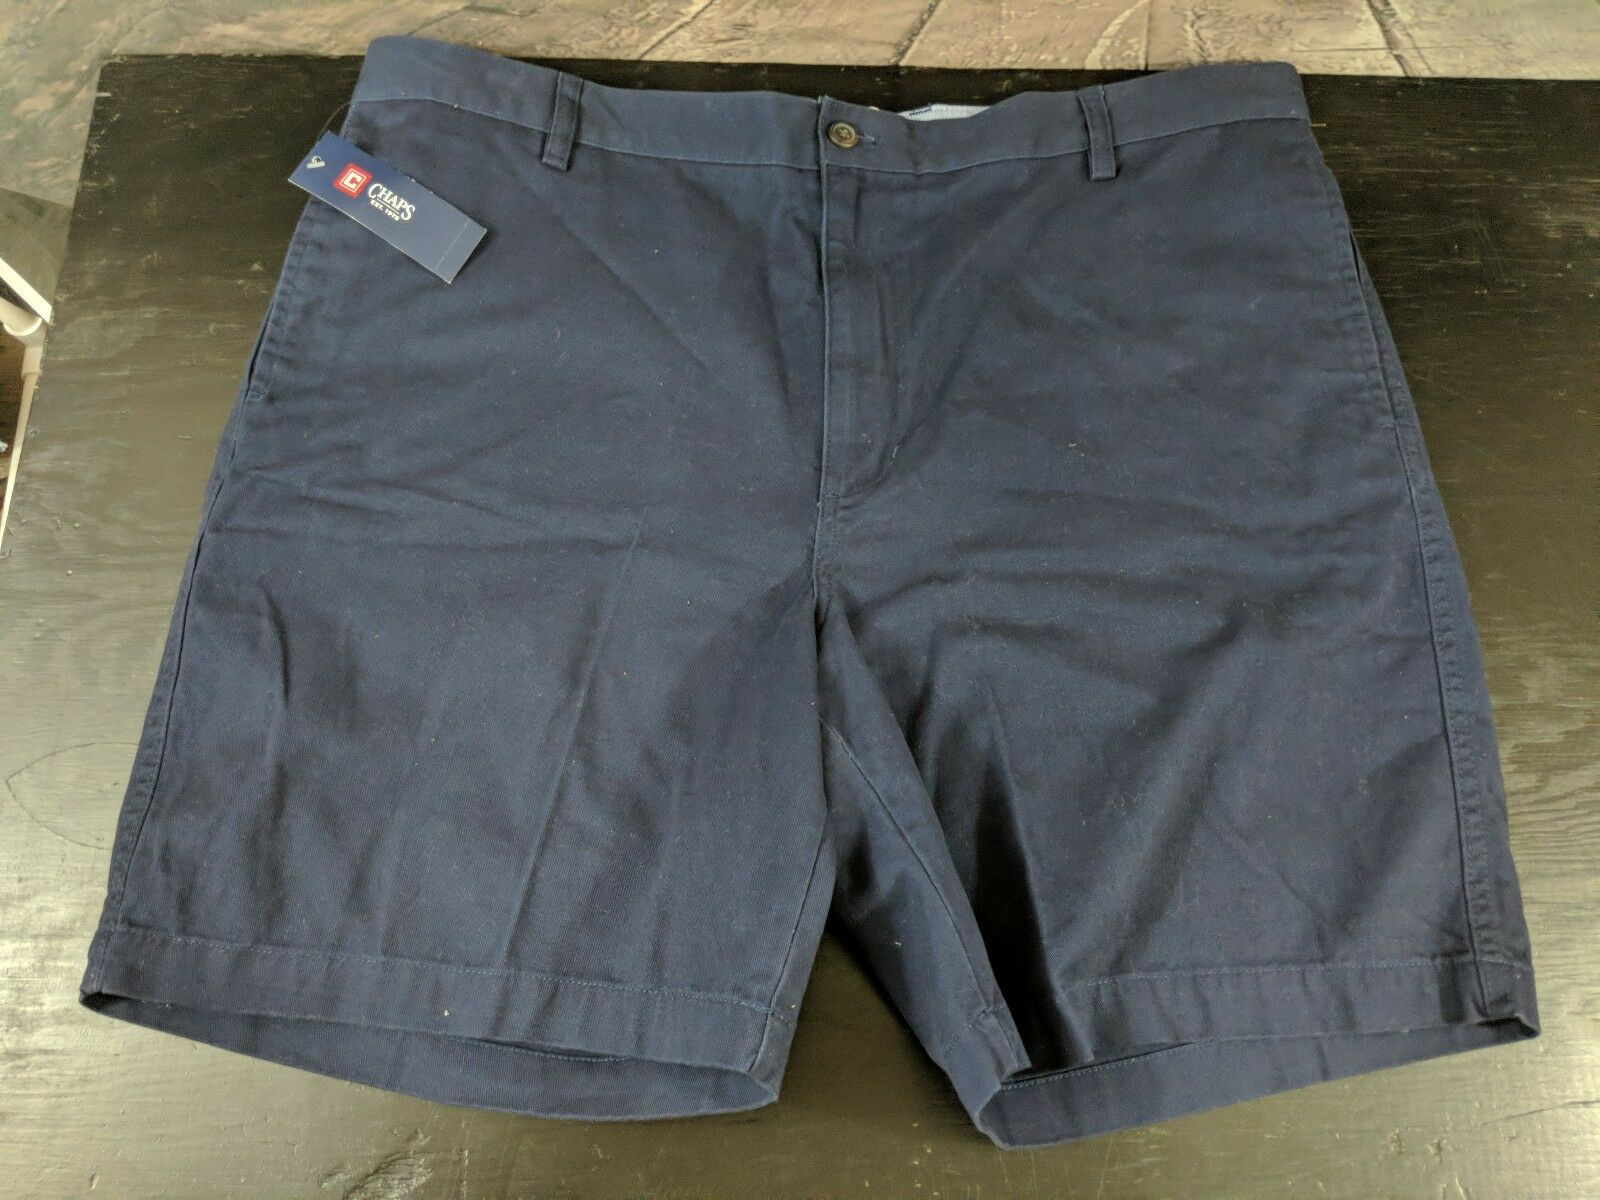 Champs Men's Shorts bluee Classic Casual Flat Front. Size 42 B13